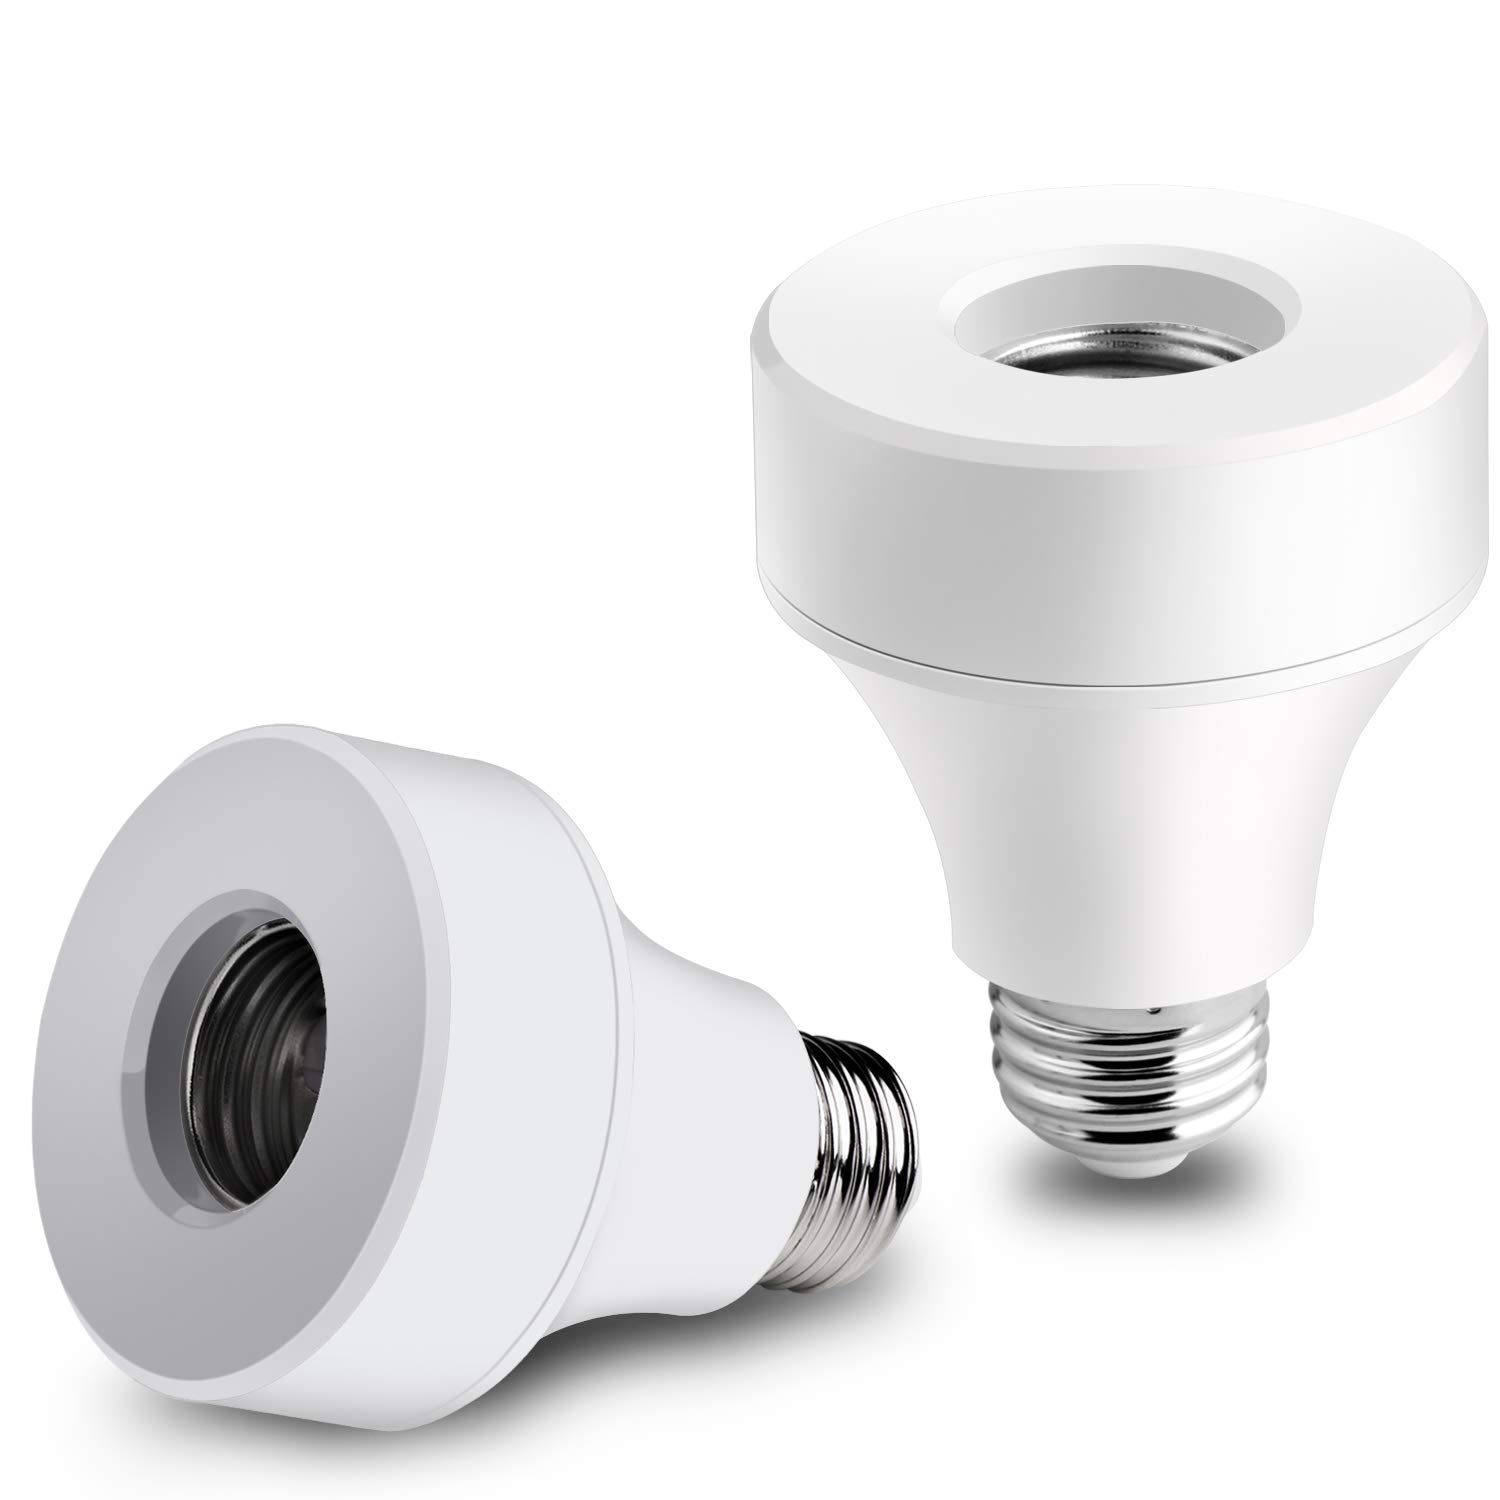 Innens Wifi Smart Bulb Socket Compatible with E26 E27, WiFi Light Bulb Base Adapter Compatible with Alexa/Google Home/IFTTT, No Hub Required (2)